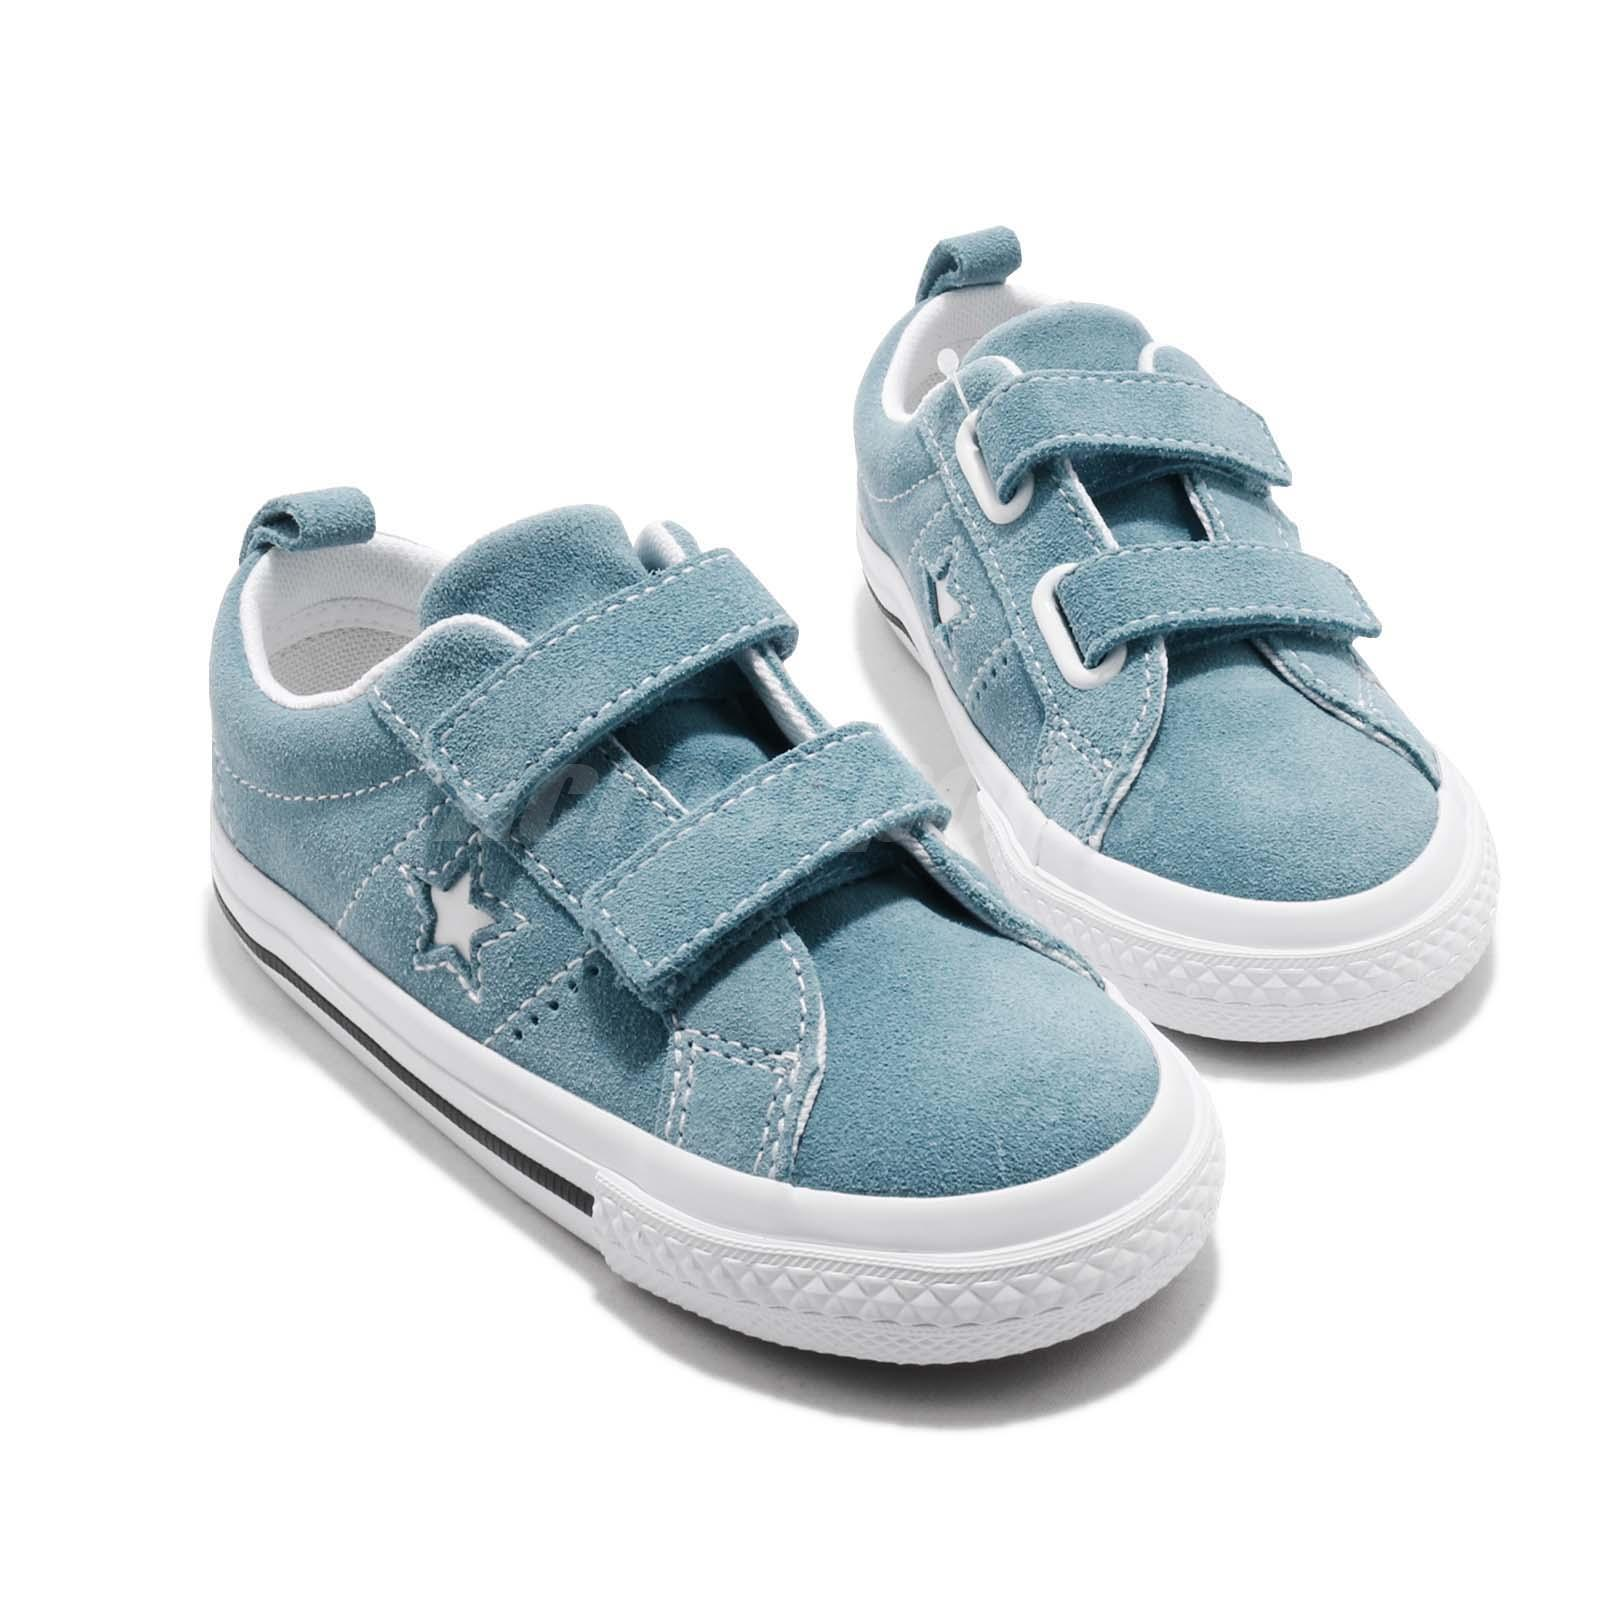 a6a5e015c7f Converse One Star 2V TD Blue White Toddler Infant Baby Shoes ...